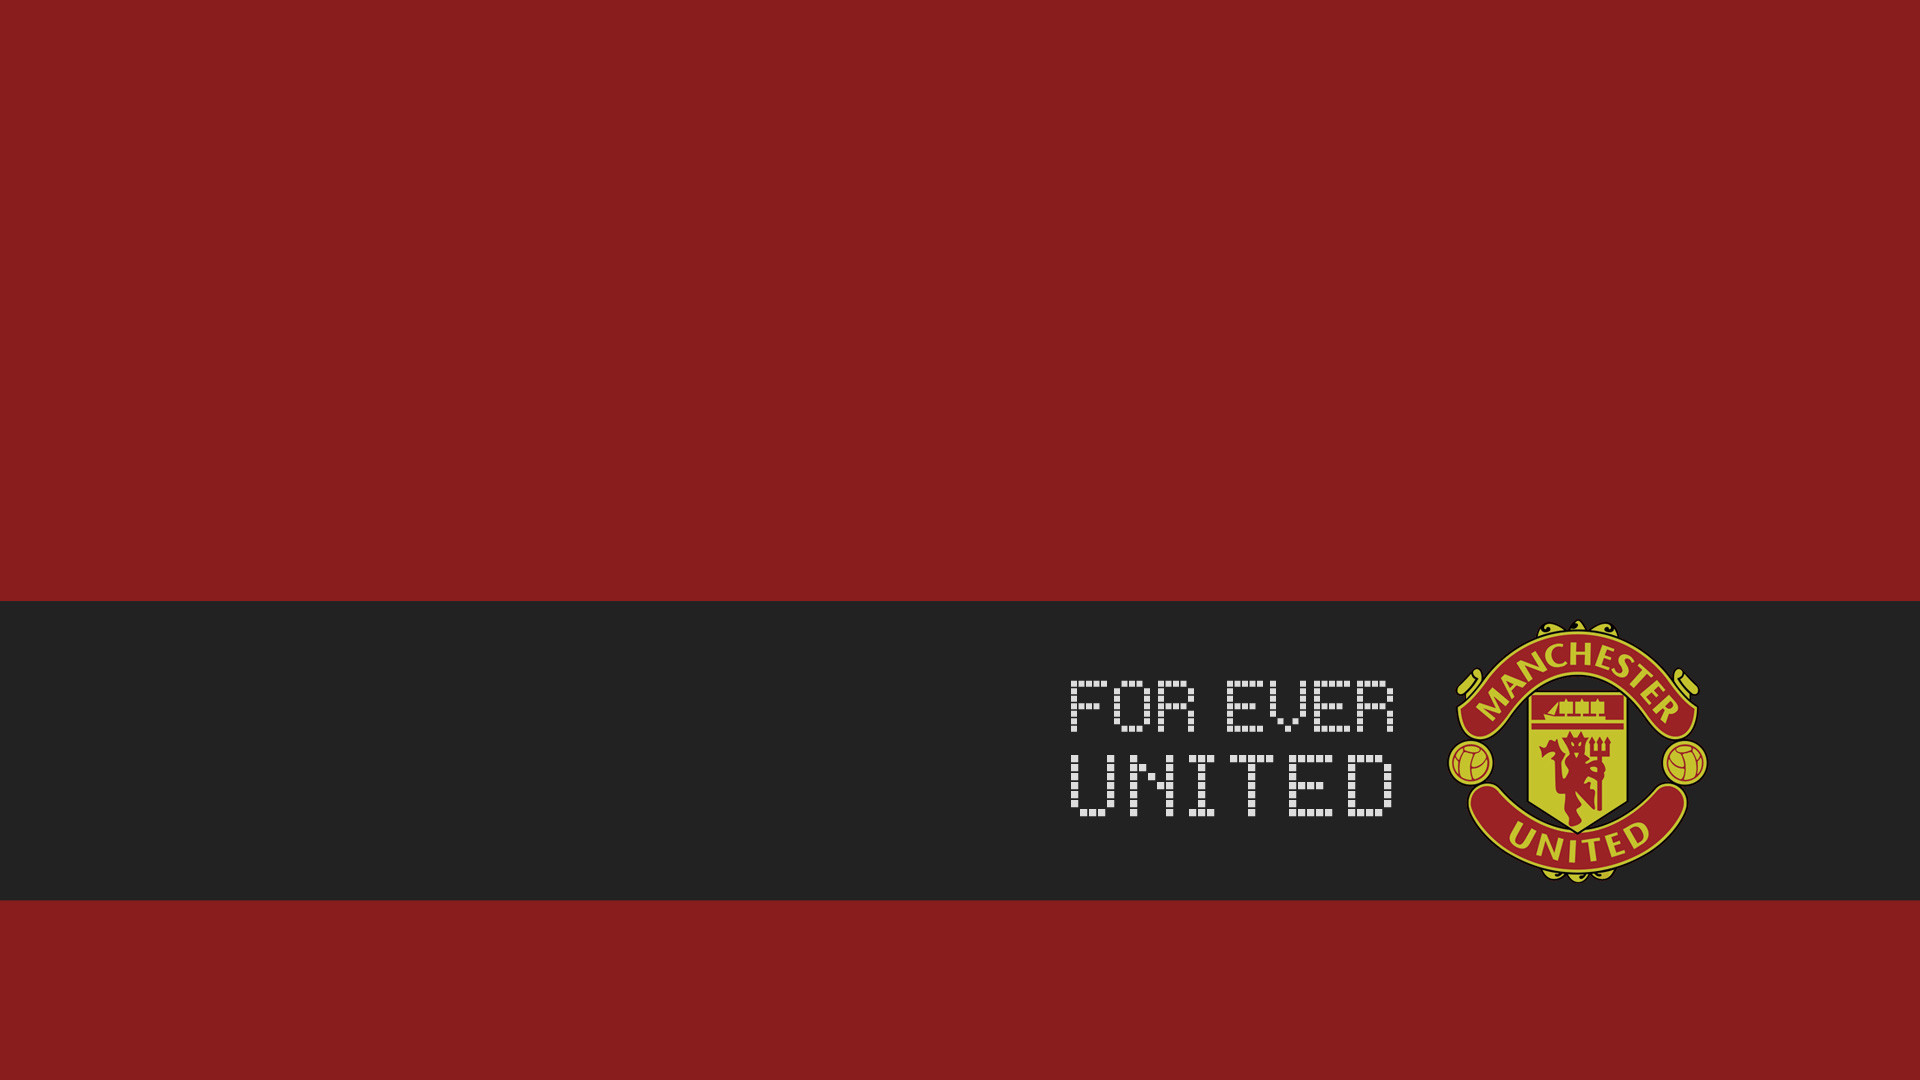 1920x1200 Manchester United black wallpaper with logo - 1920x1200